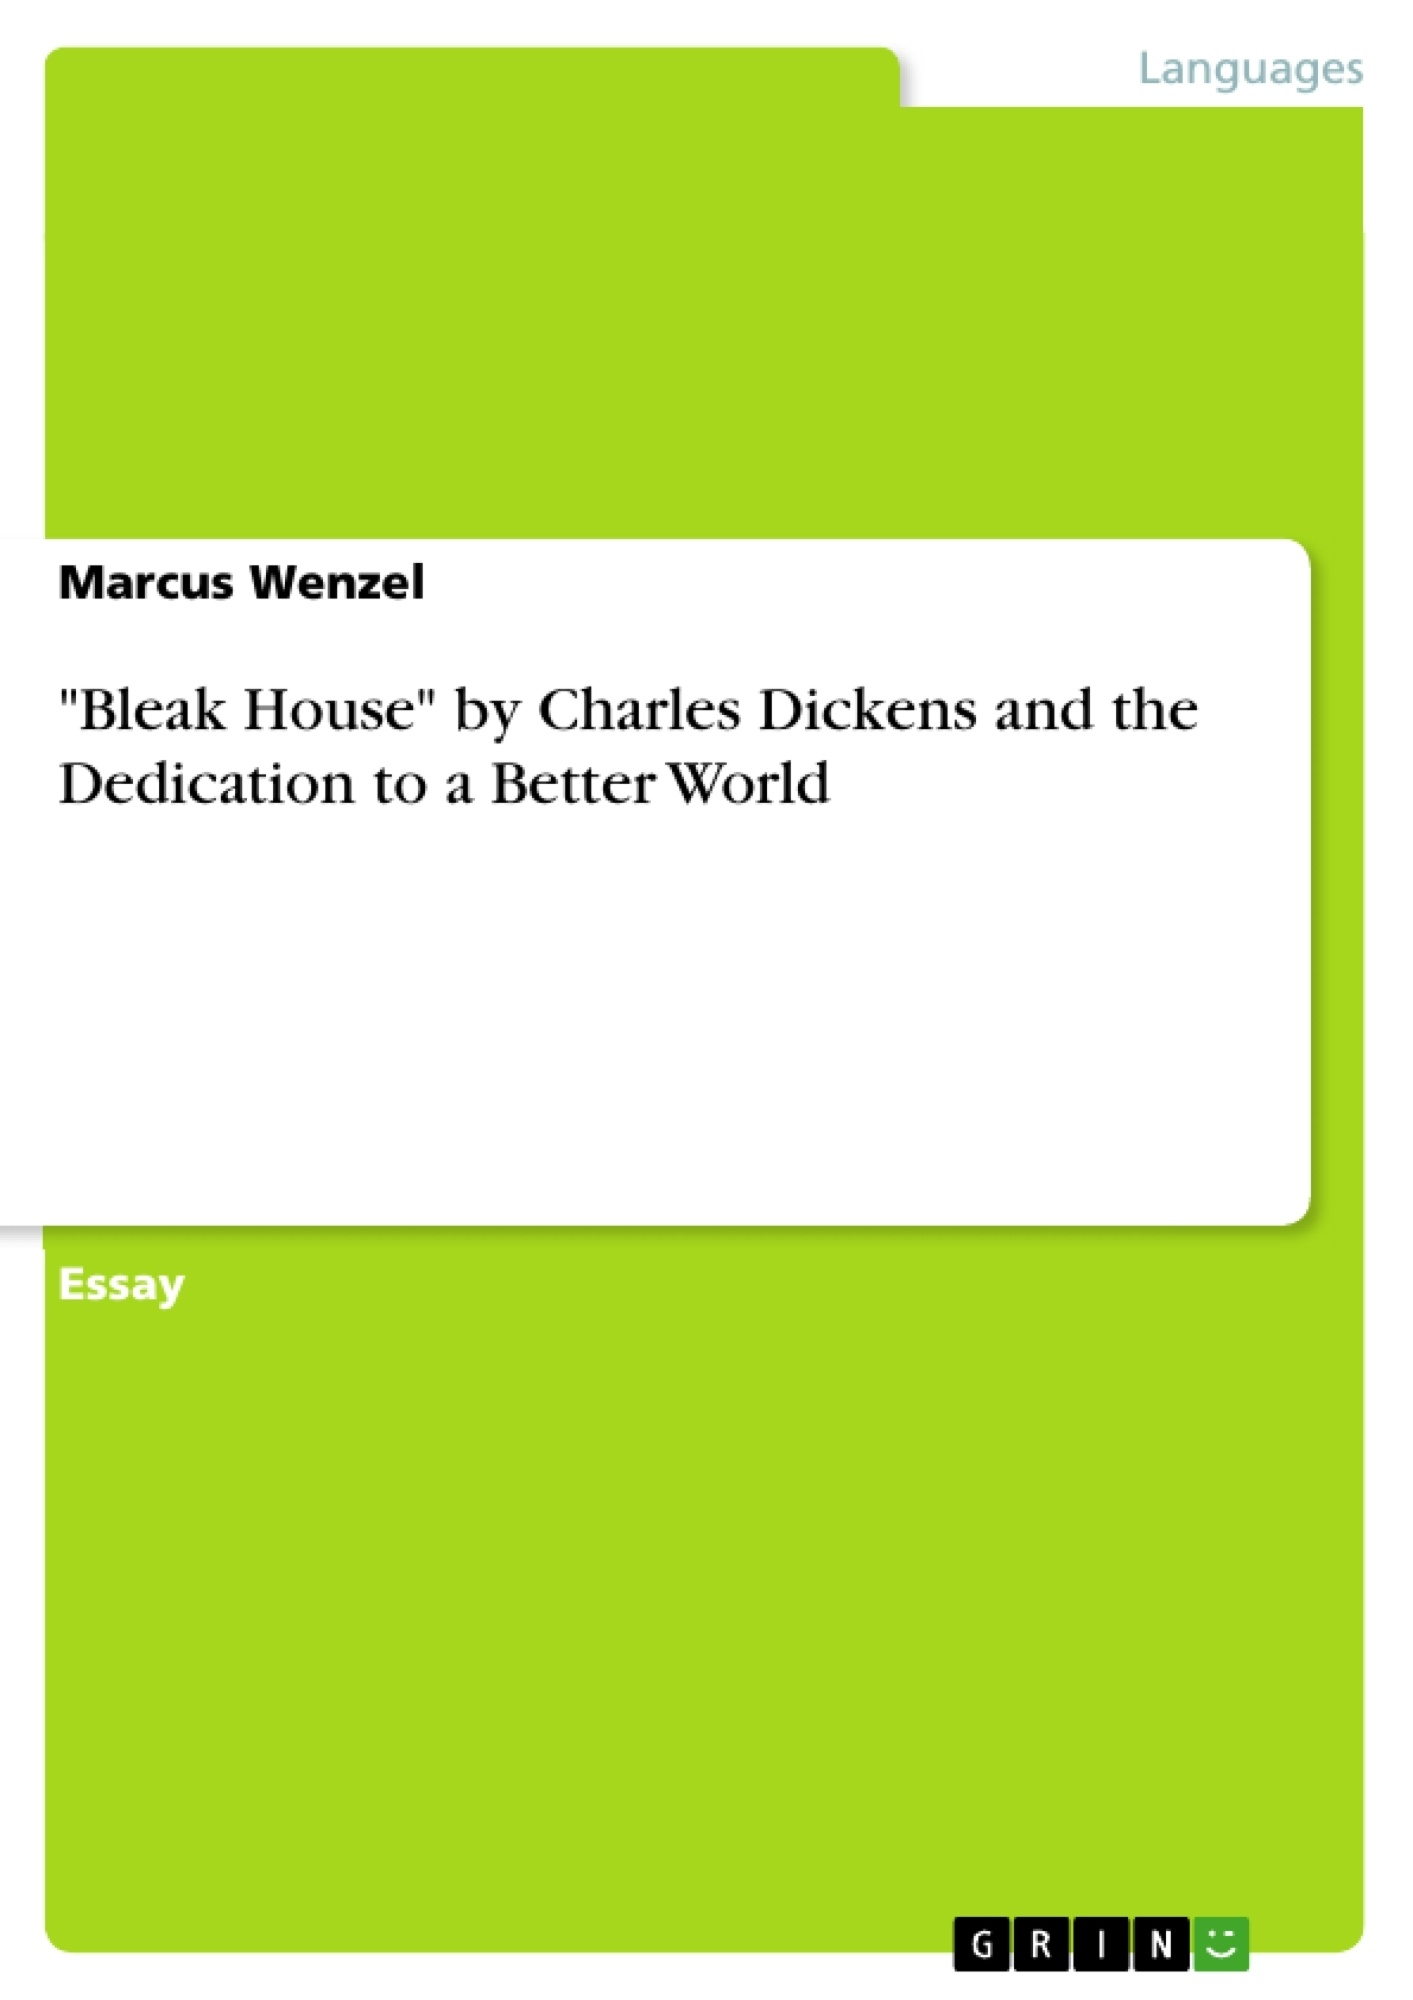 """Title: """"Bleak House"""" by Charles Dickens and the Dedication to a Better World"""